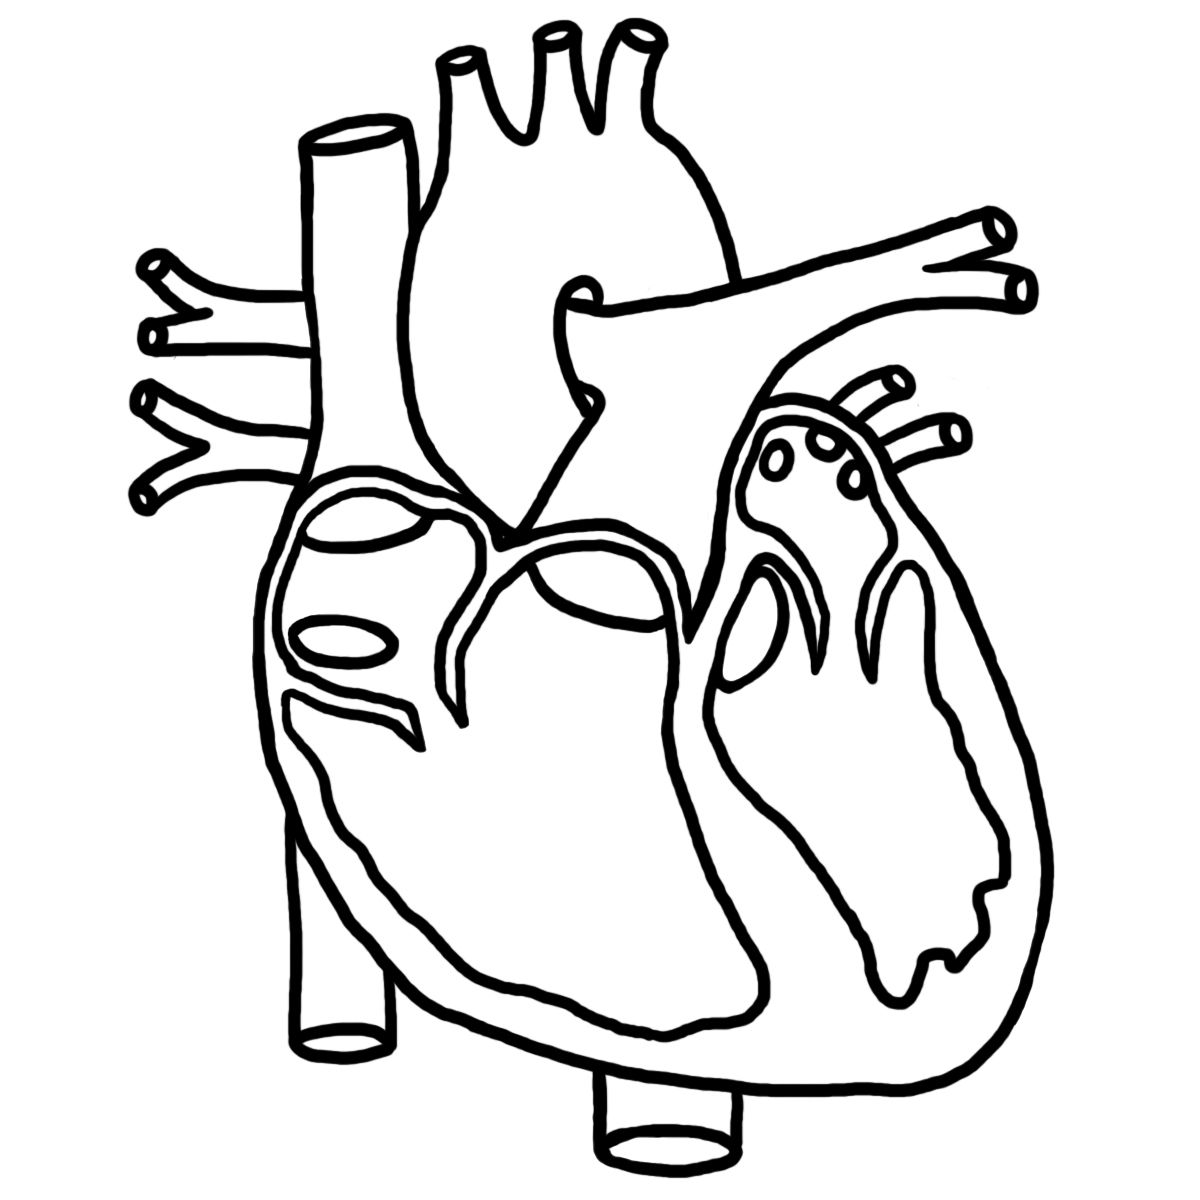 My heart is set on you free clipart pattern for my nursing human heart coloring pictures for kids human heart coloring pictures for kids ccuart Gallery